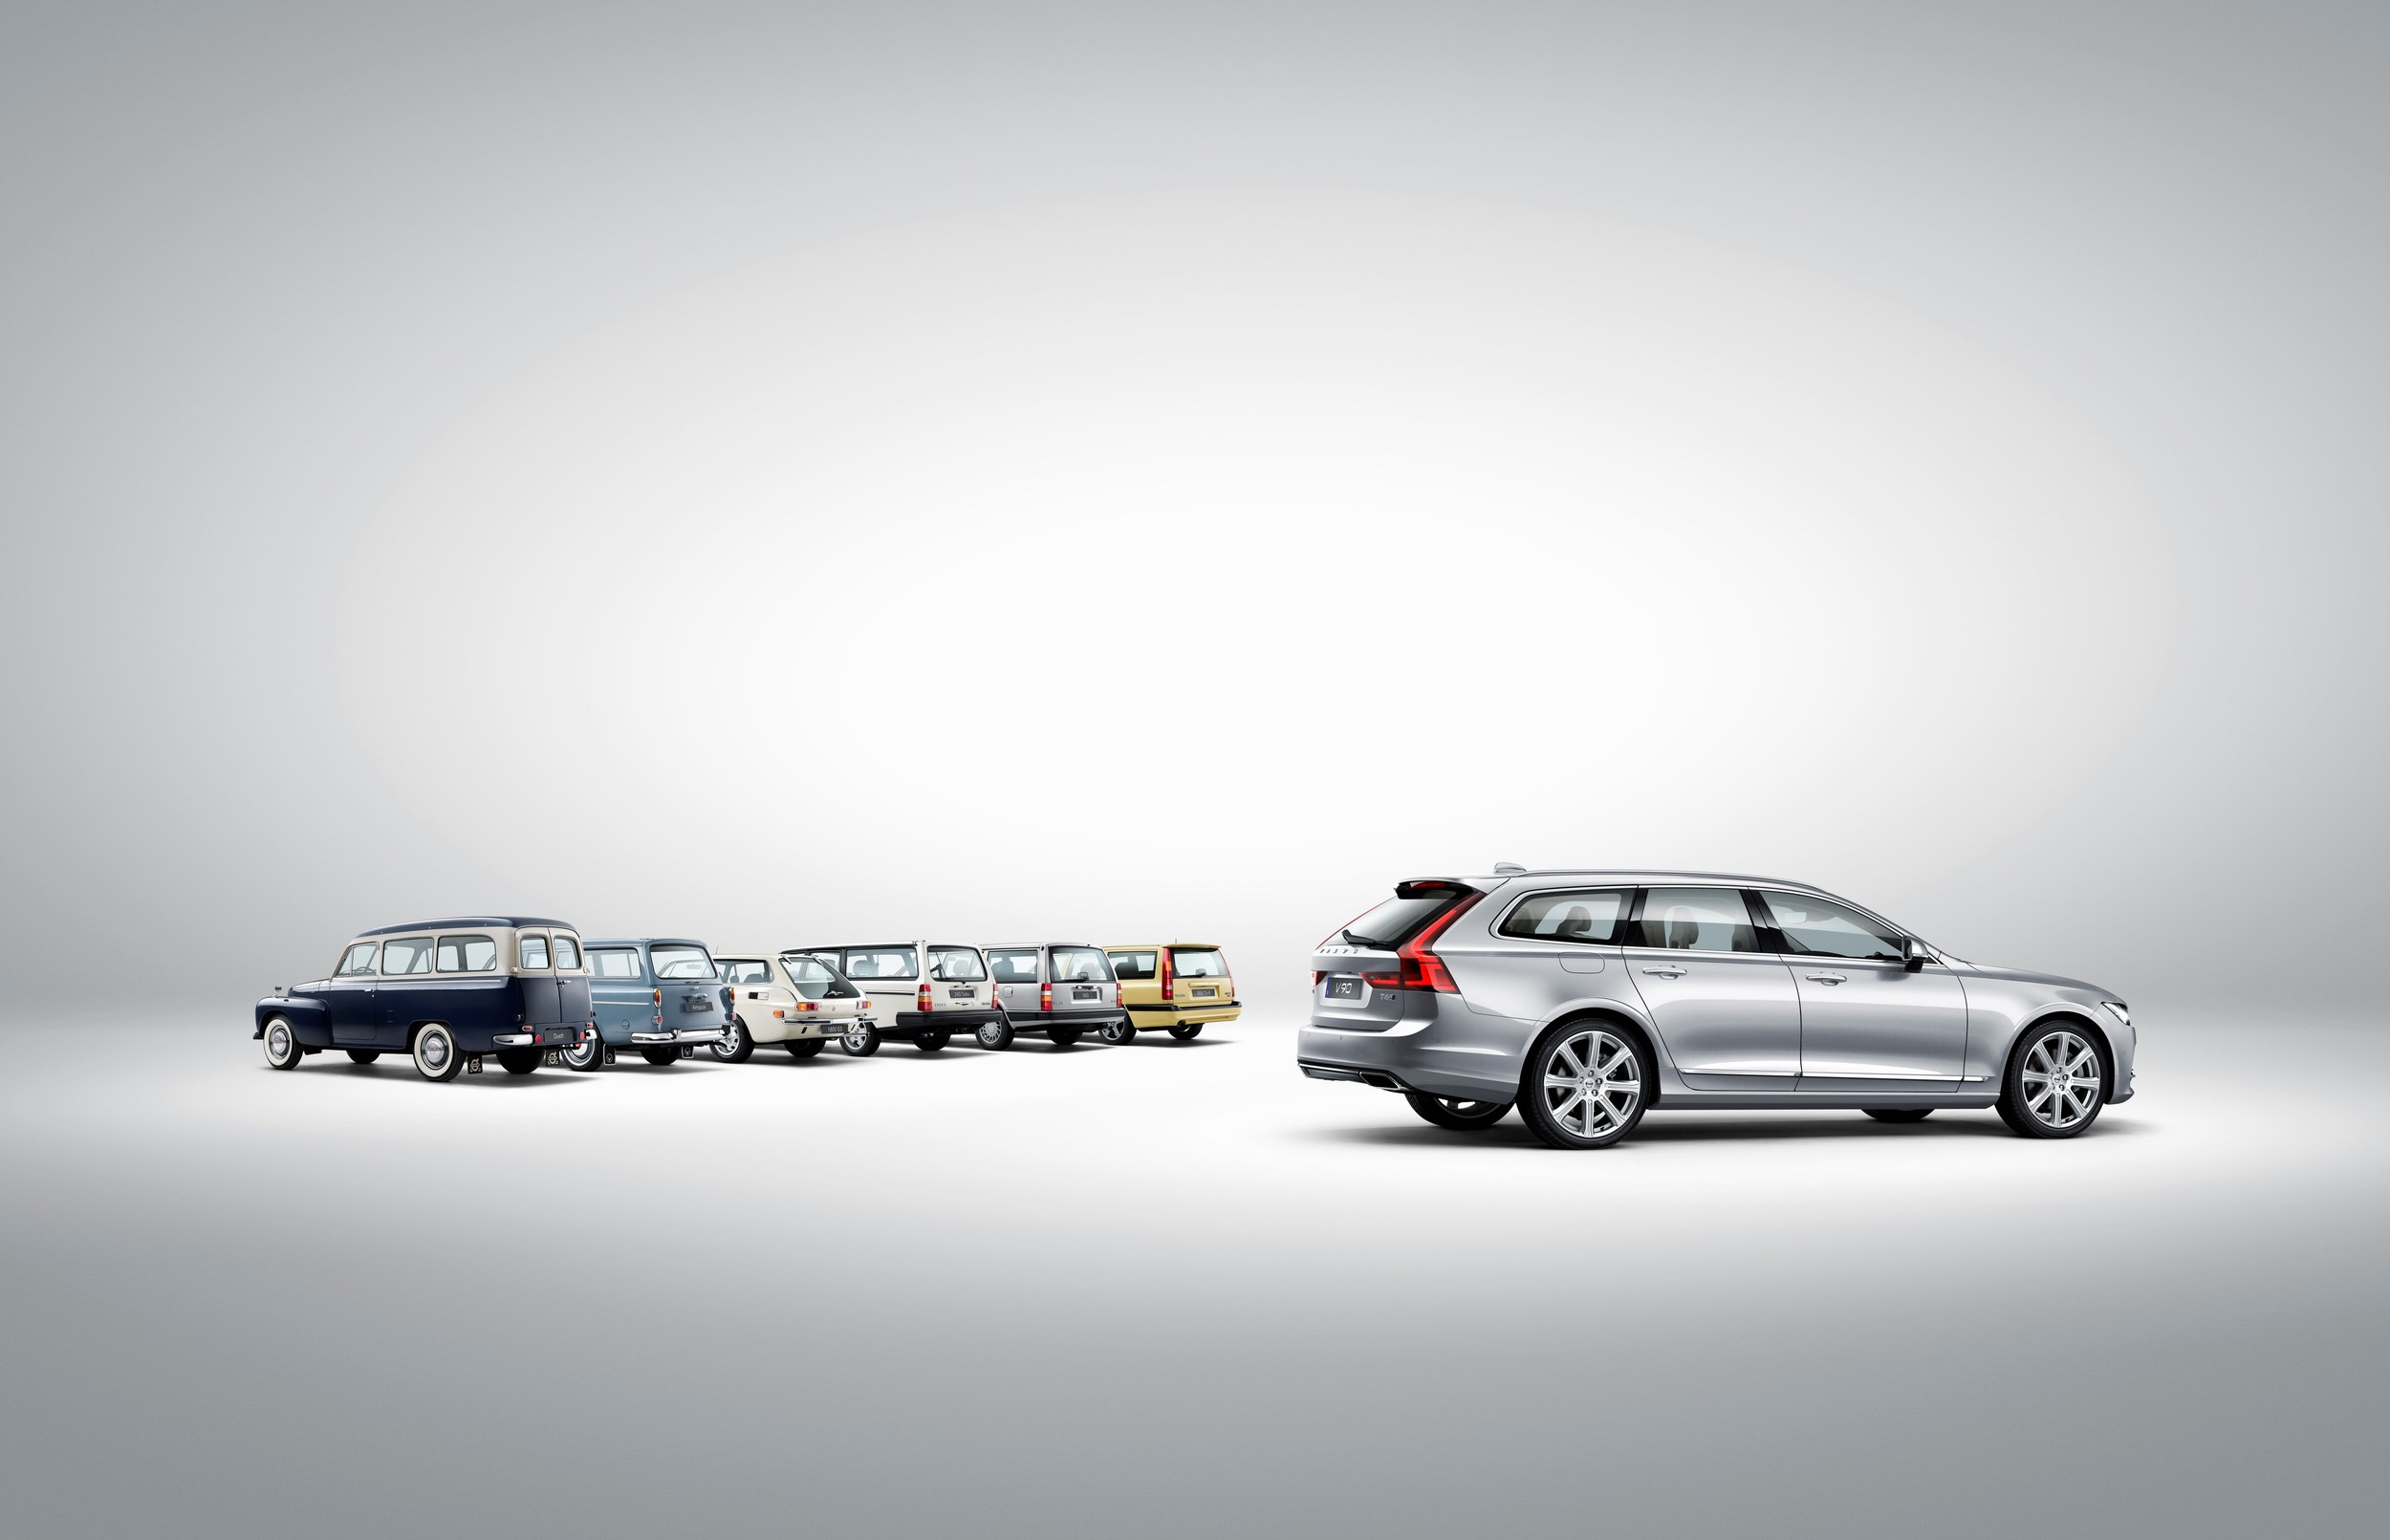 174118_Volvo_V90_and_a_historical_line_up_of_Volvo_estate_models.jpg